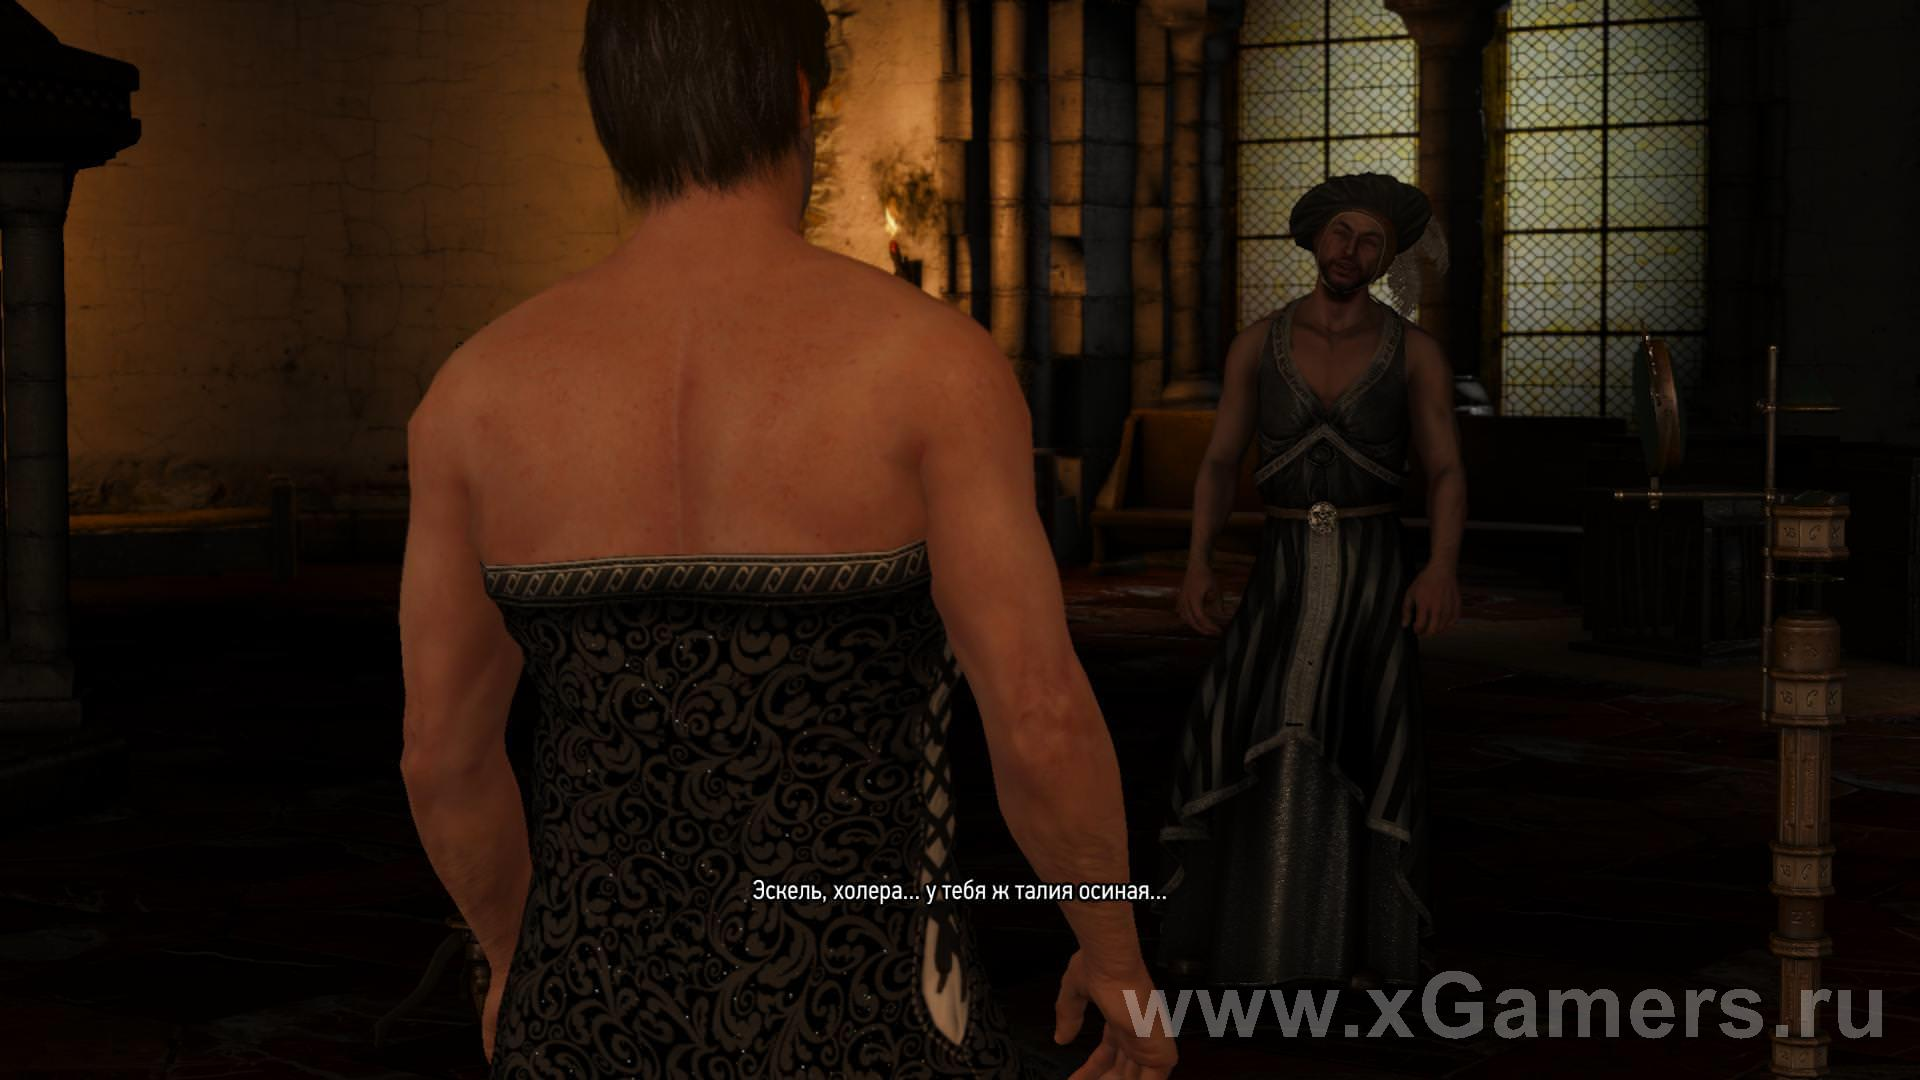 Geralt and friends in a womans dresses.